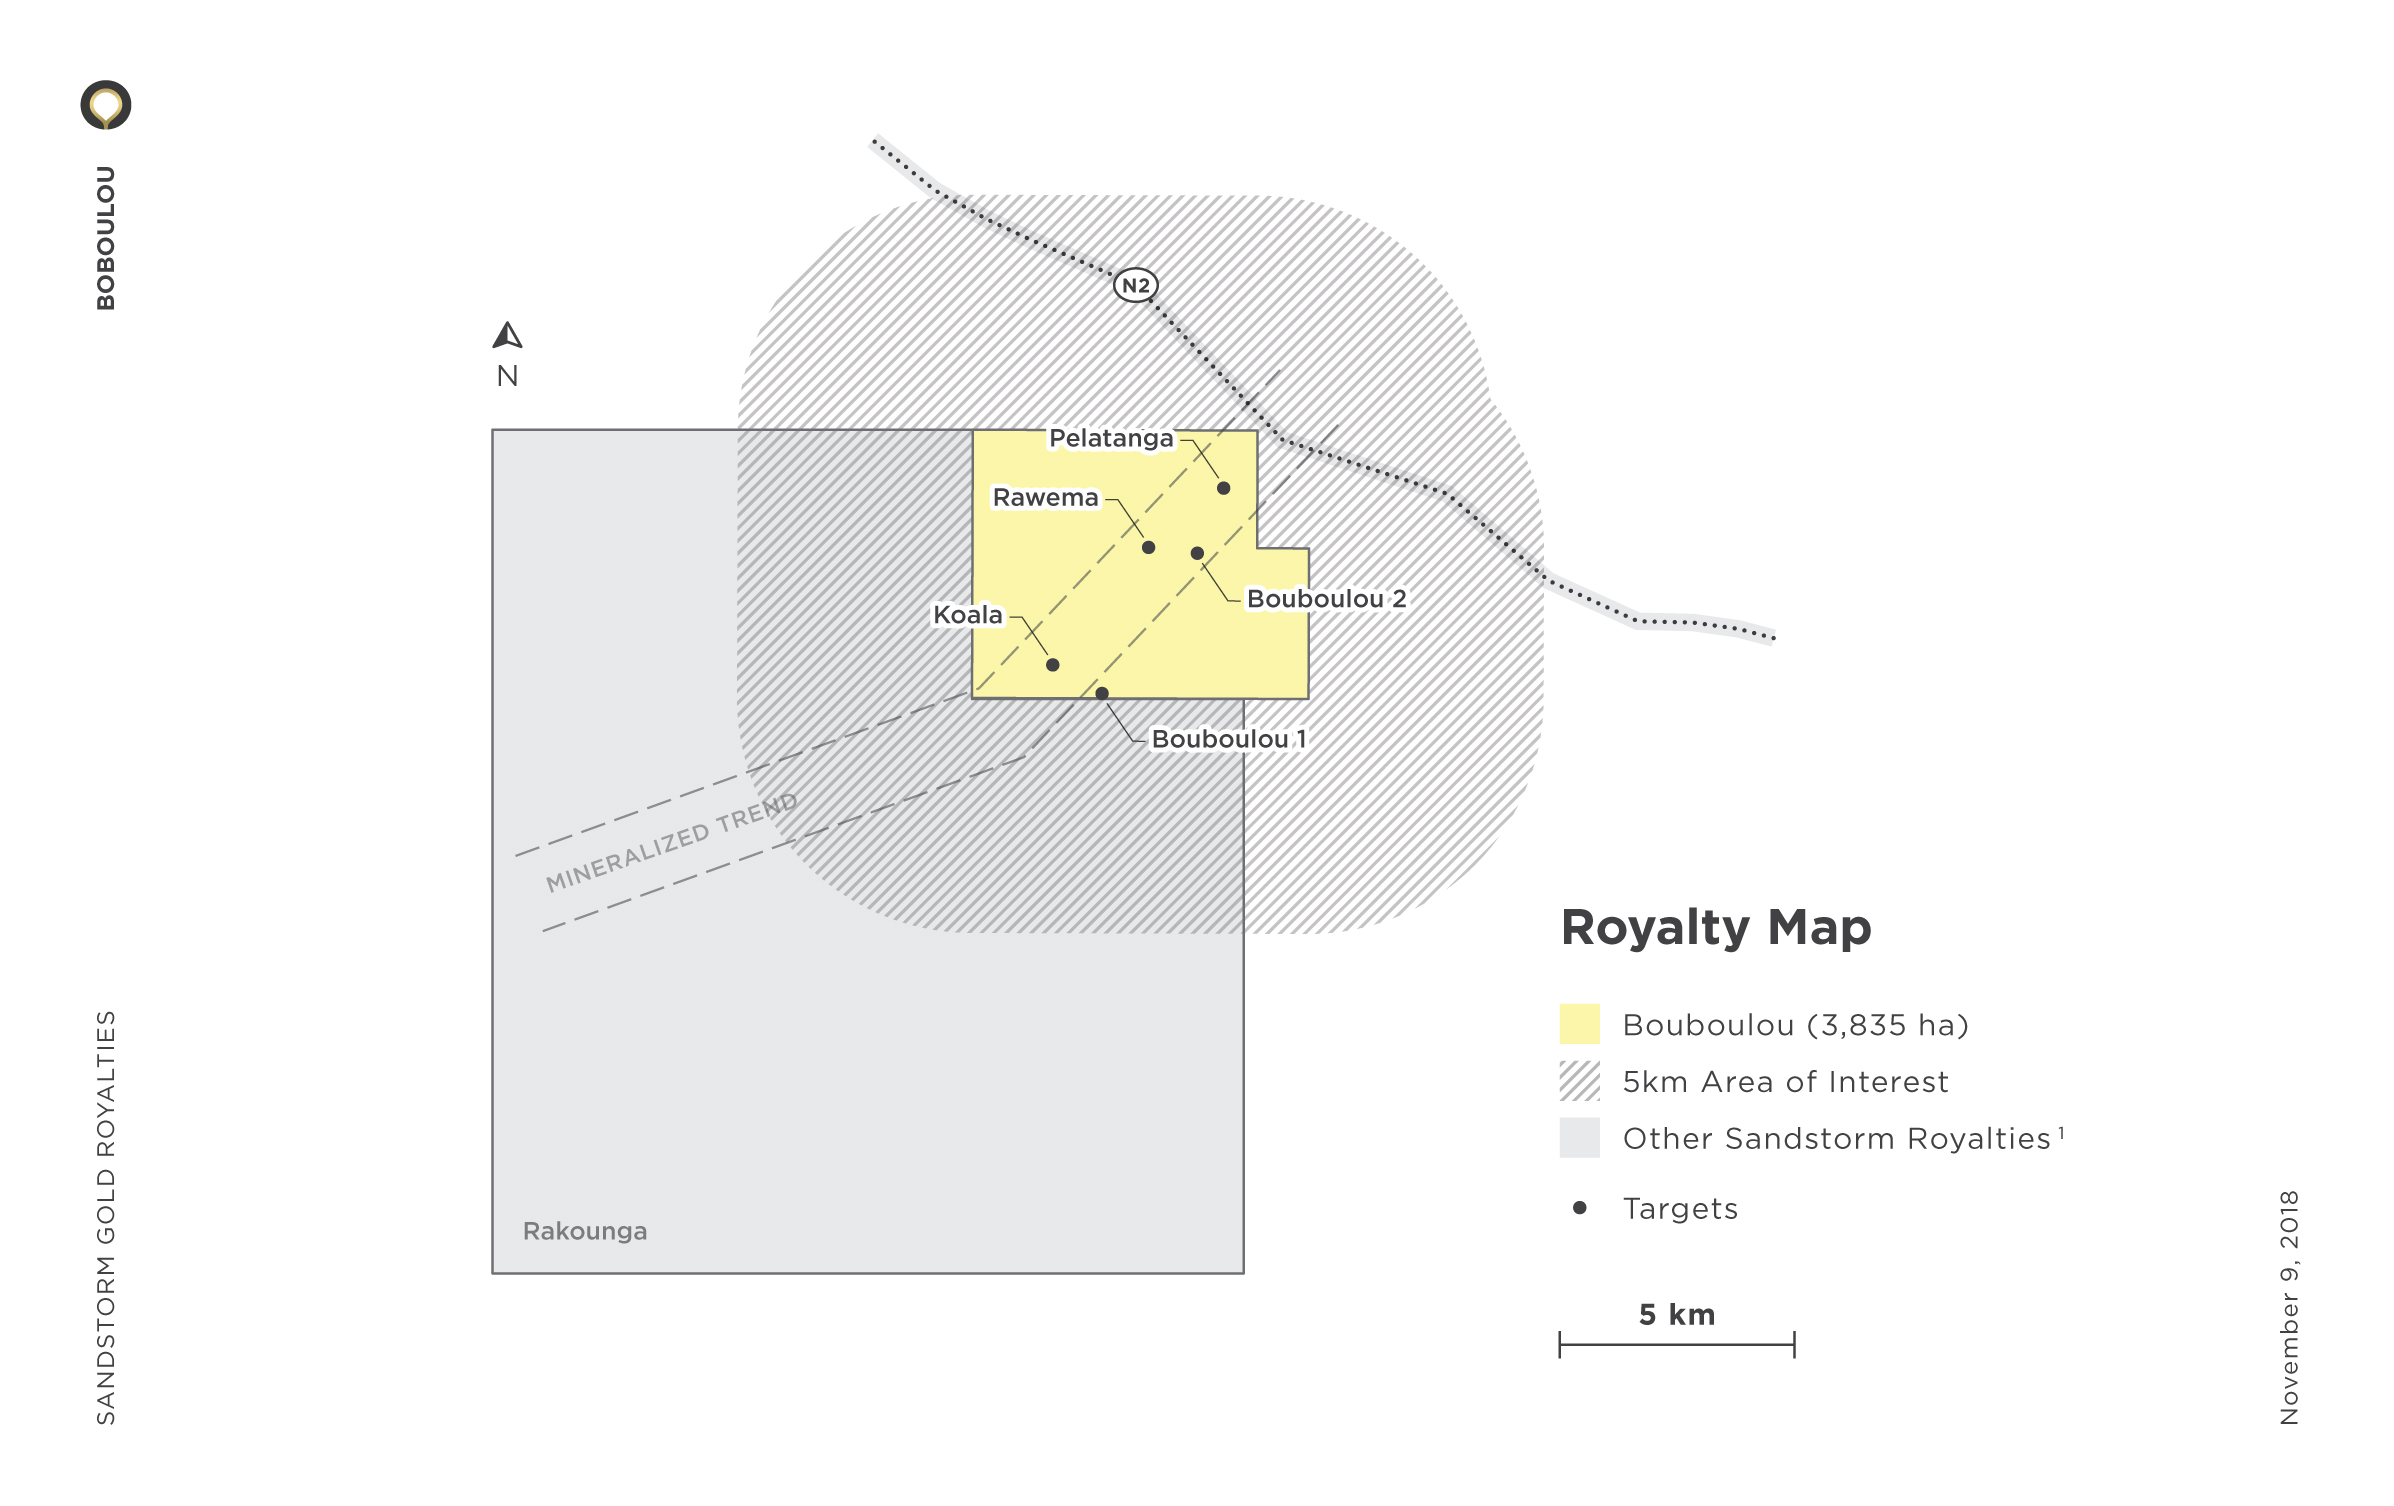 Bouboulou Royalty Map